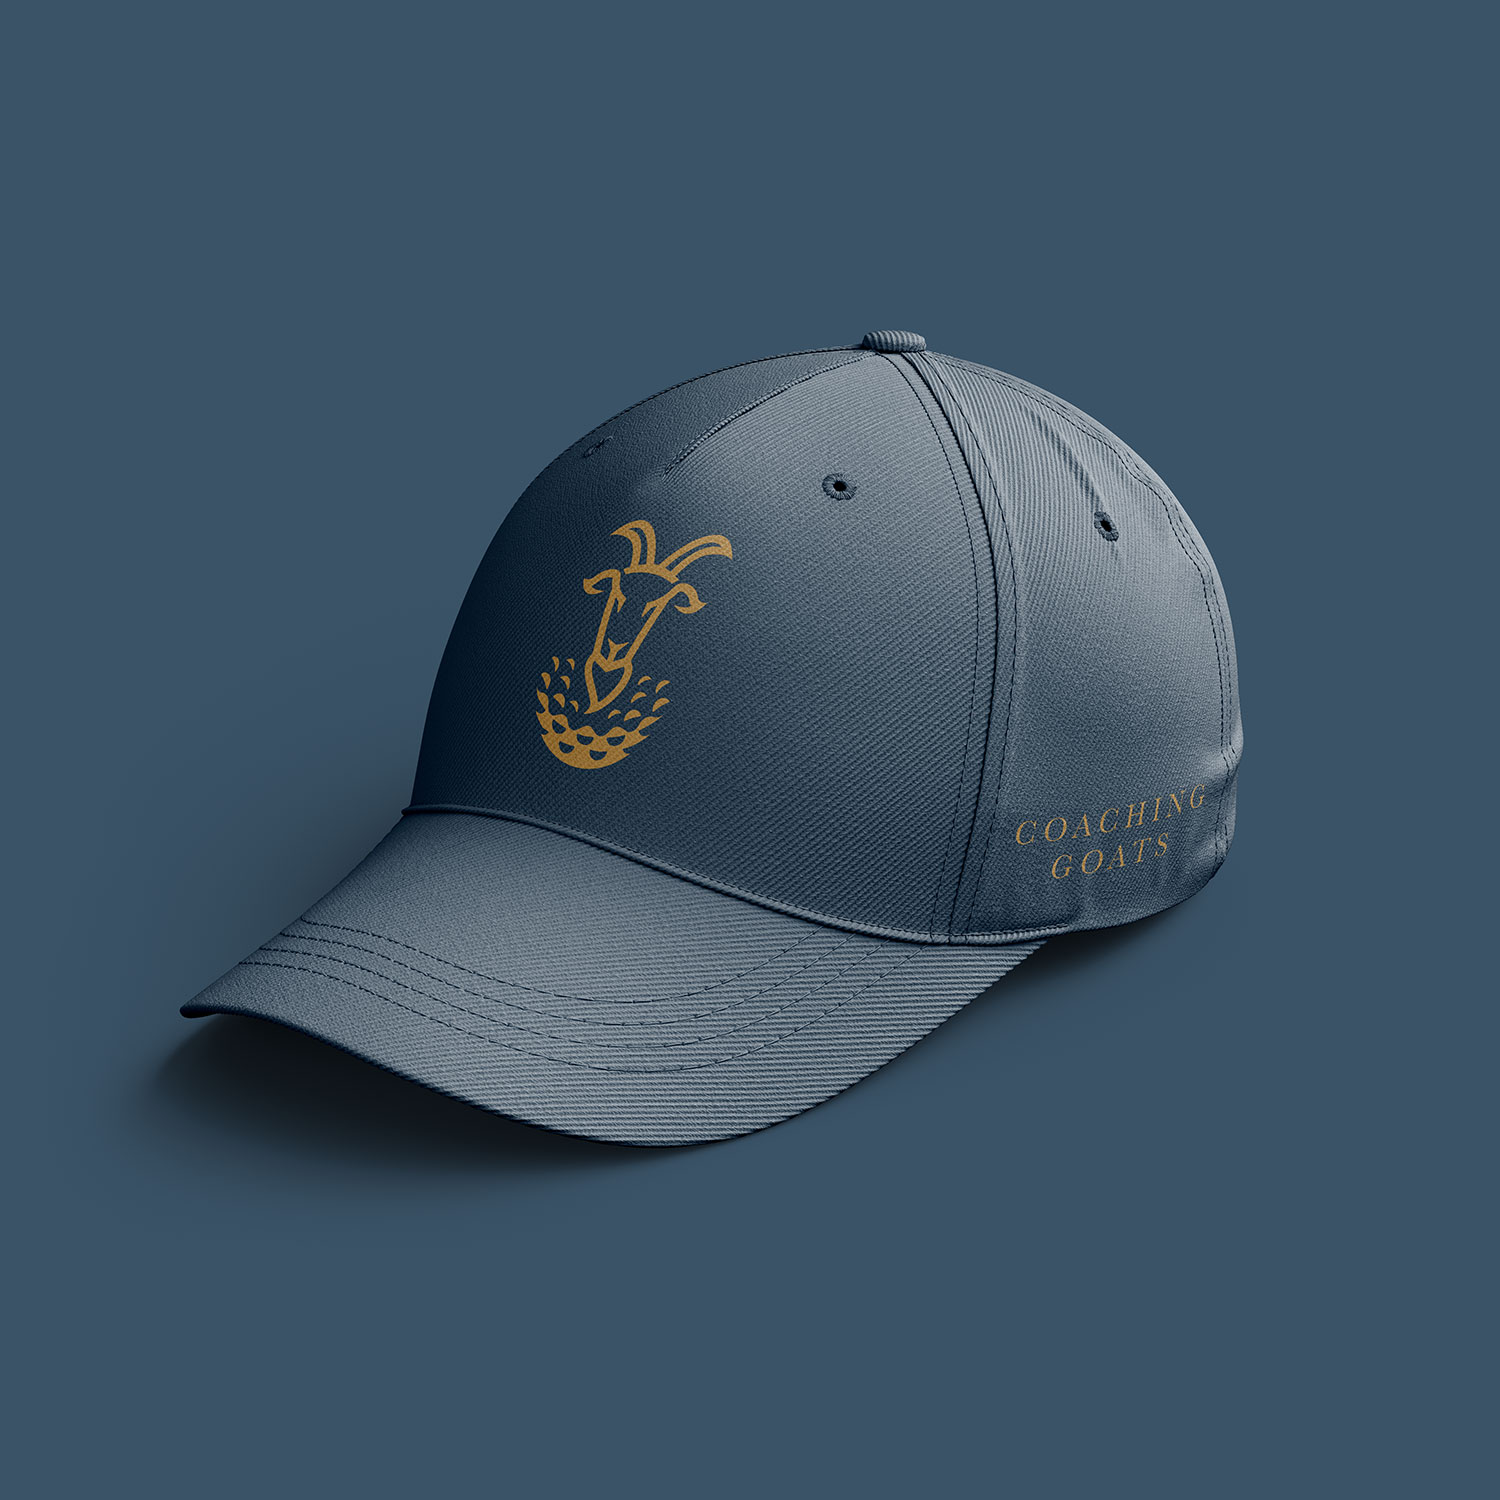 coaching goats hat design